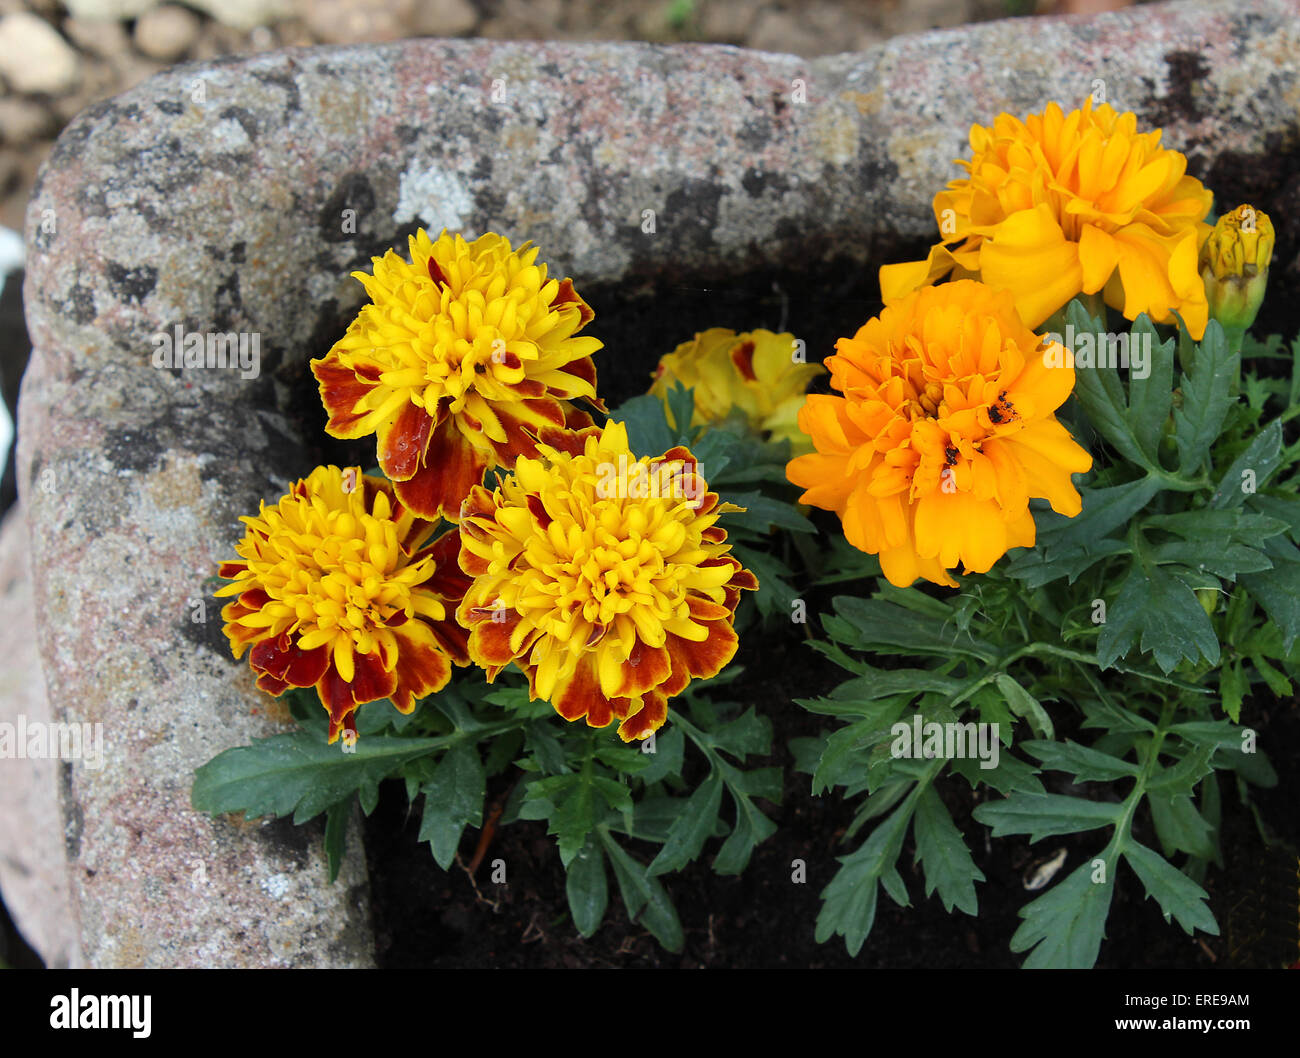 French Marigolds Stock Photos   French Marigolds Stock Images   Alamy England Dorset Garden Flowers French Marigolds in a terrace pot Peter Baker    Stock Image